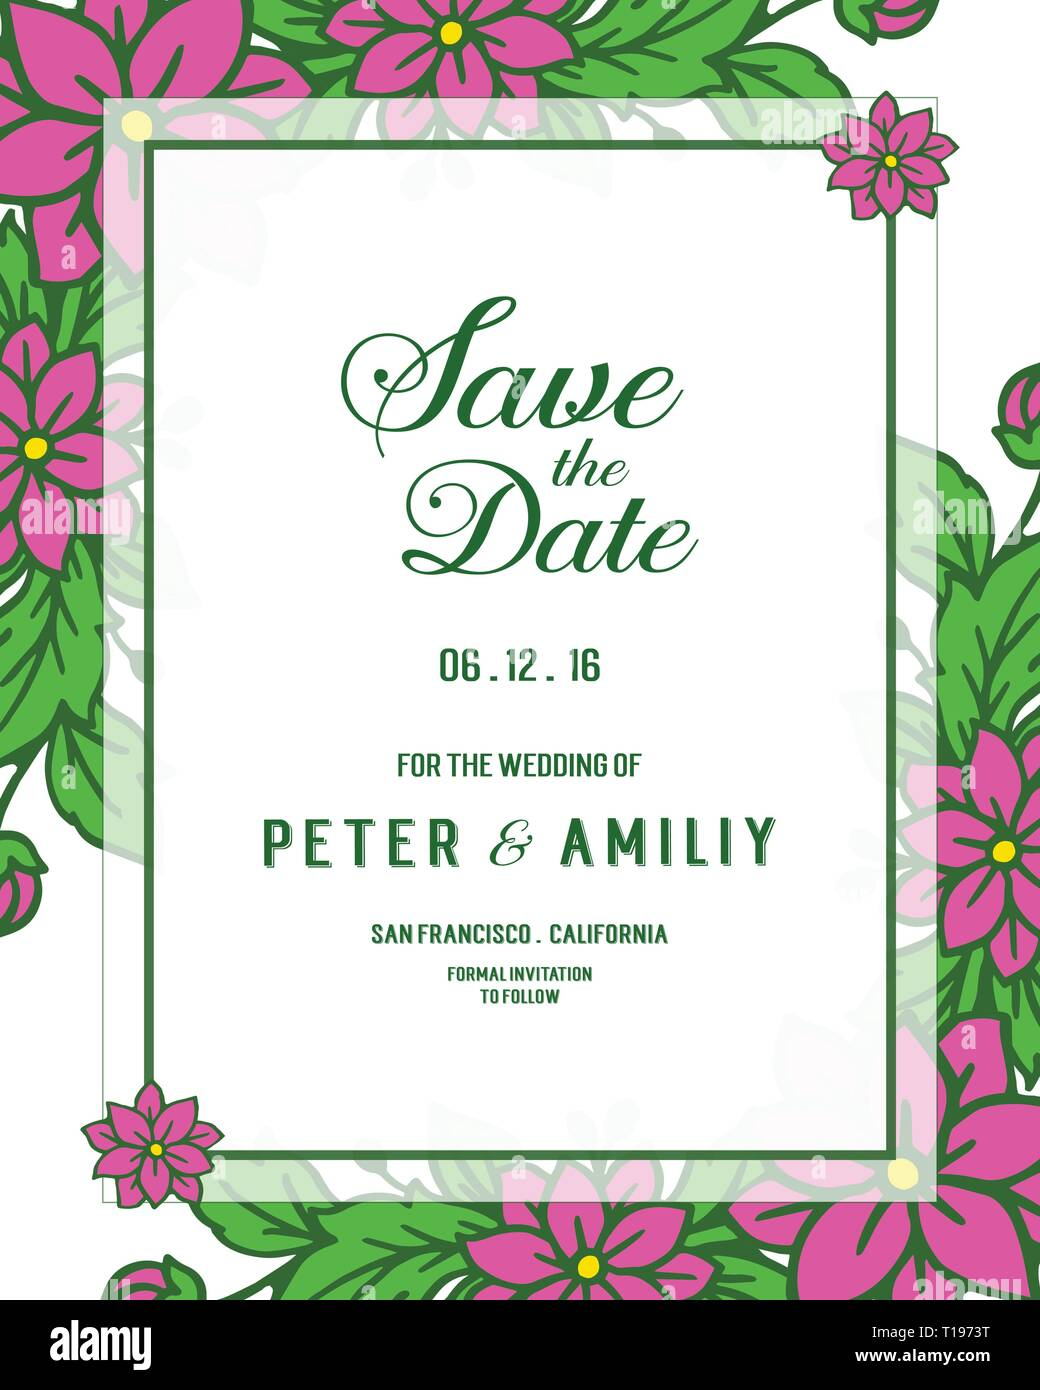 https www alamy com vector illustration wedding invitation card save the date with leaf flower frames blooms hand drawn image241762972 html